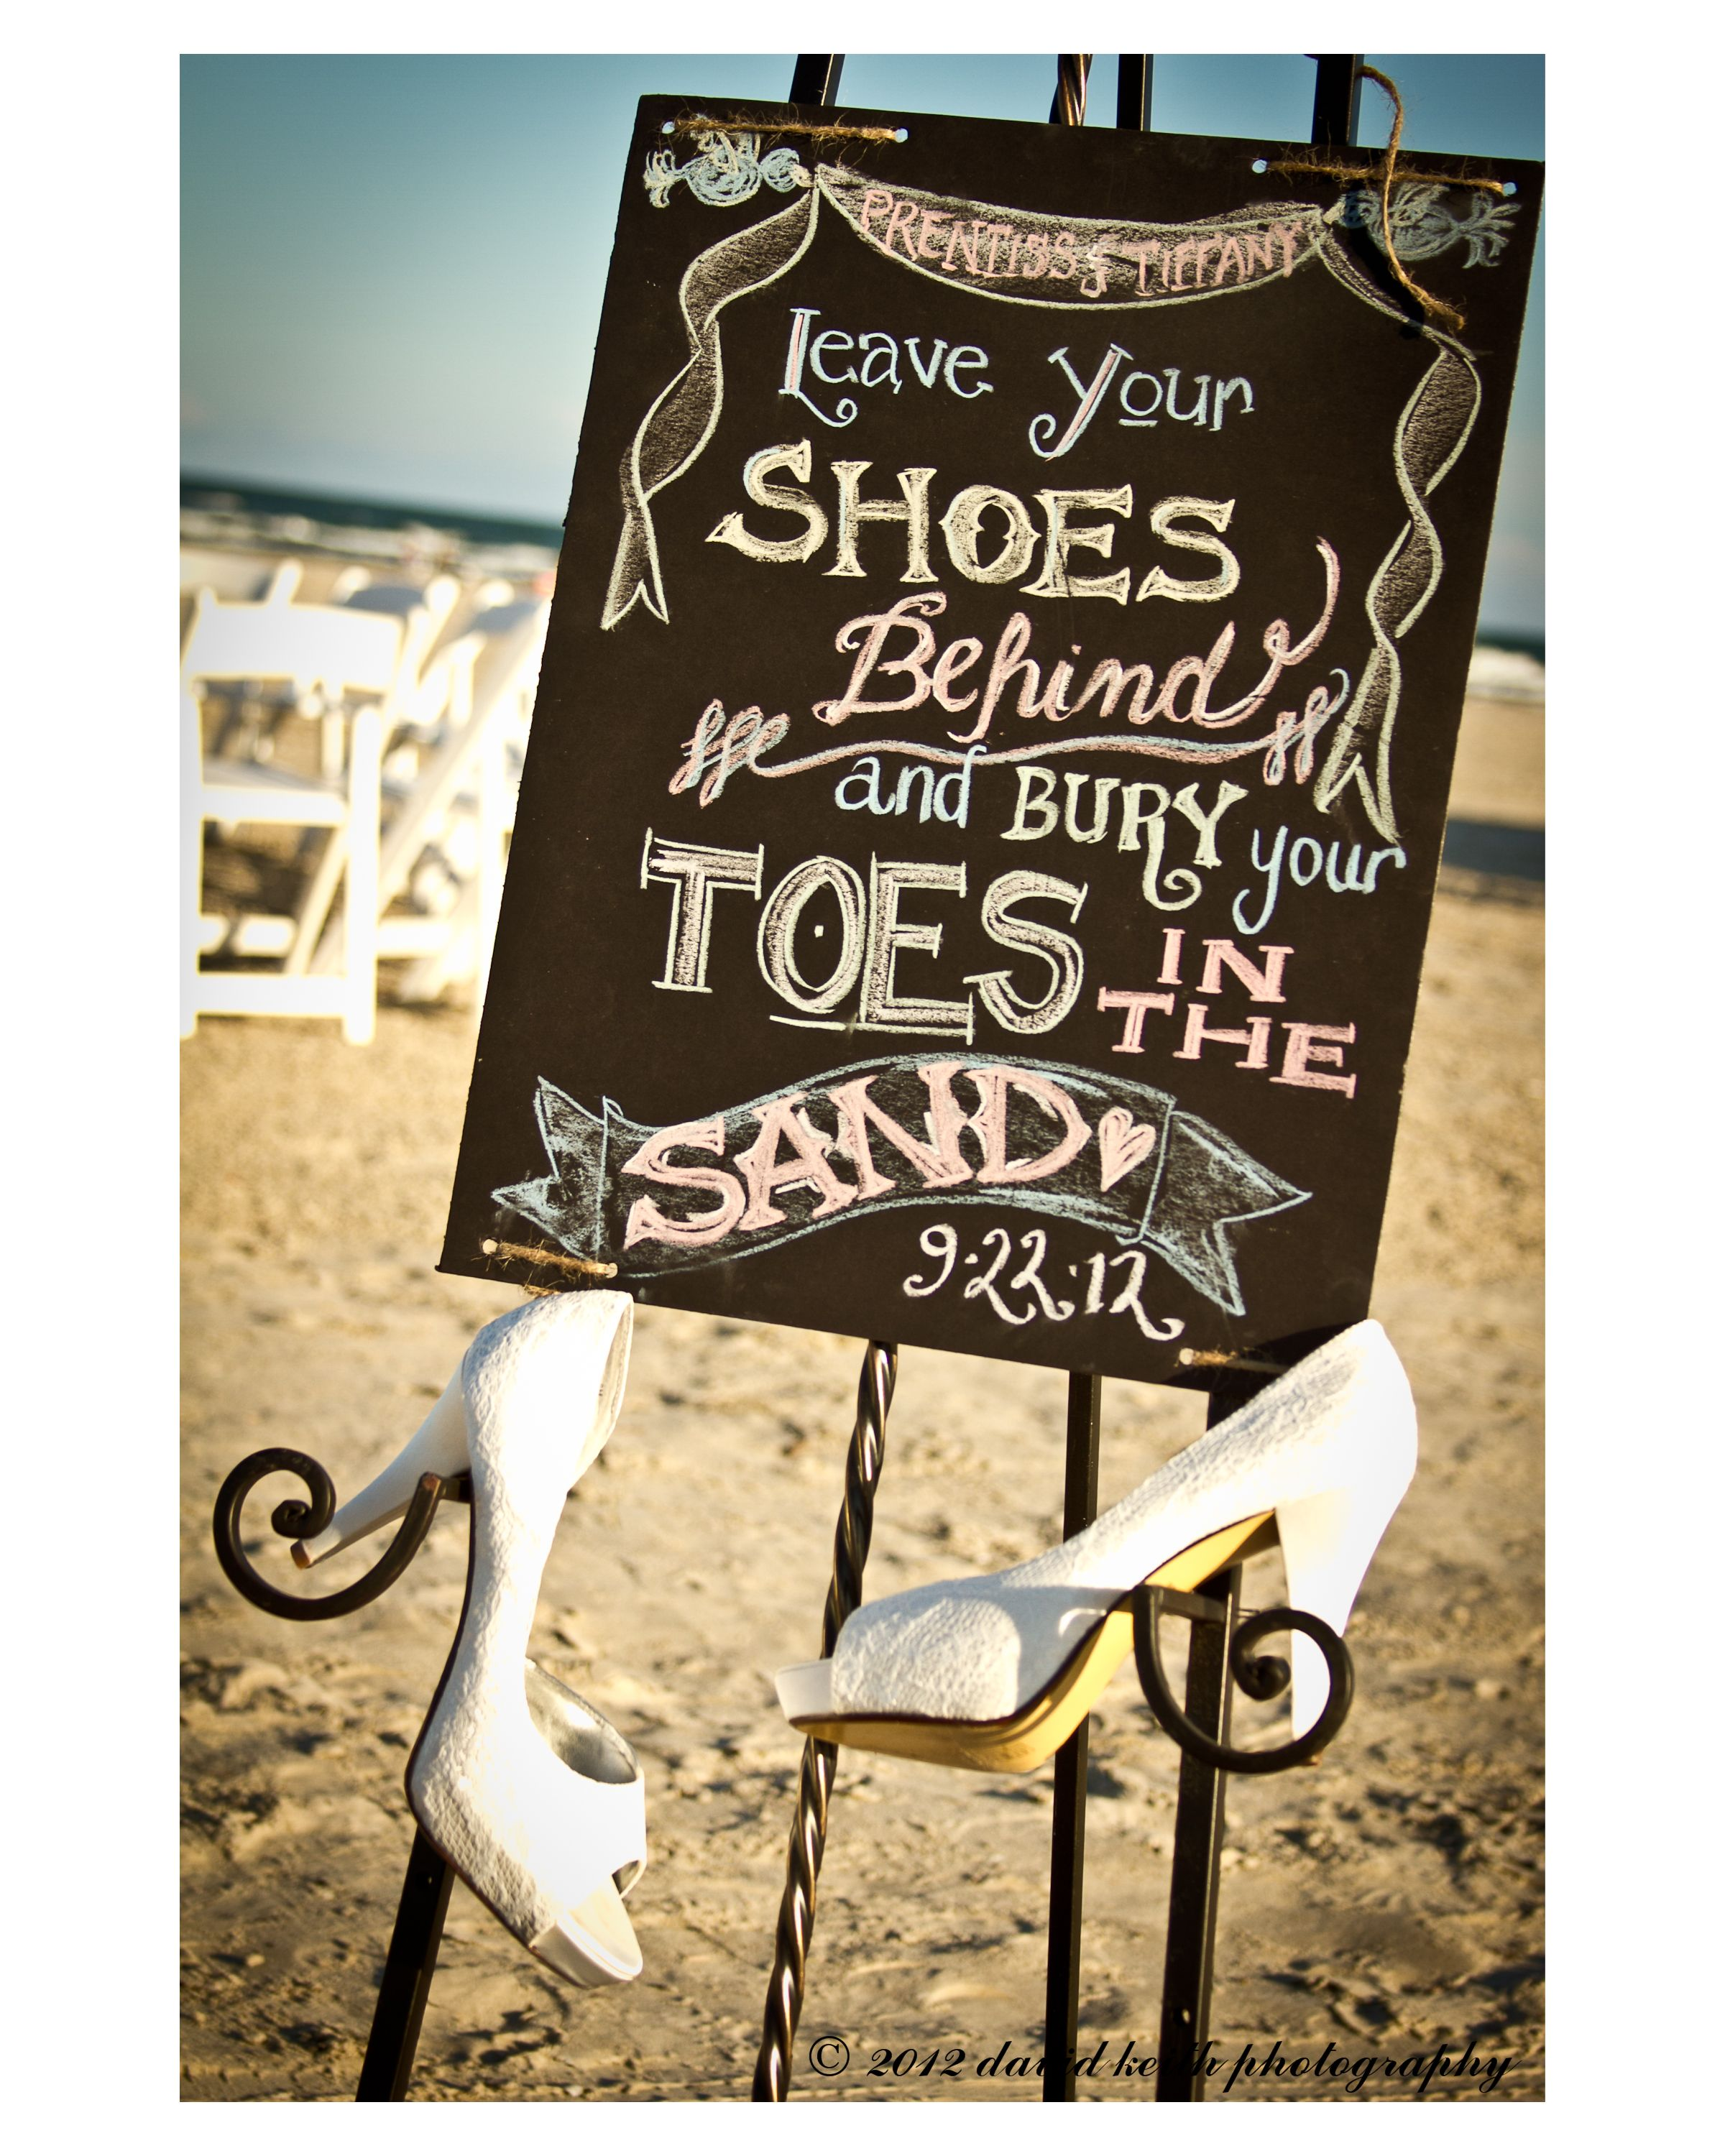 Port aransas on pinterest texas texas hill country and for Texas beach wedding packages